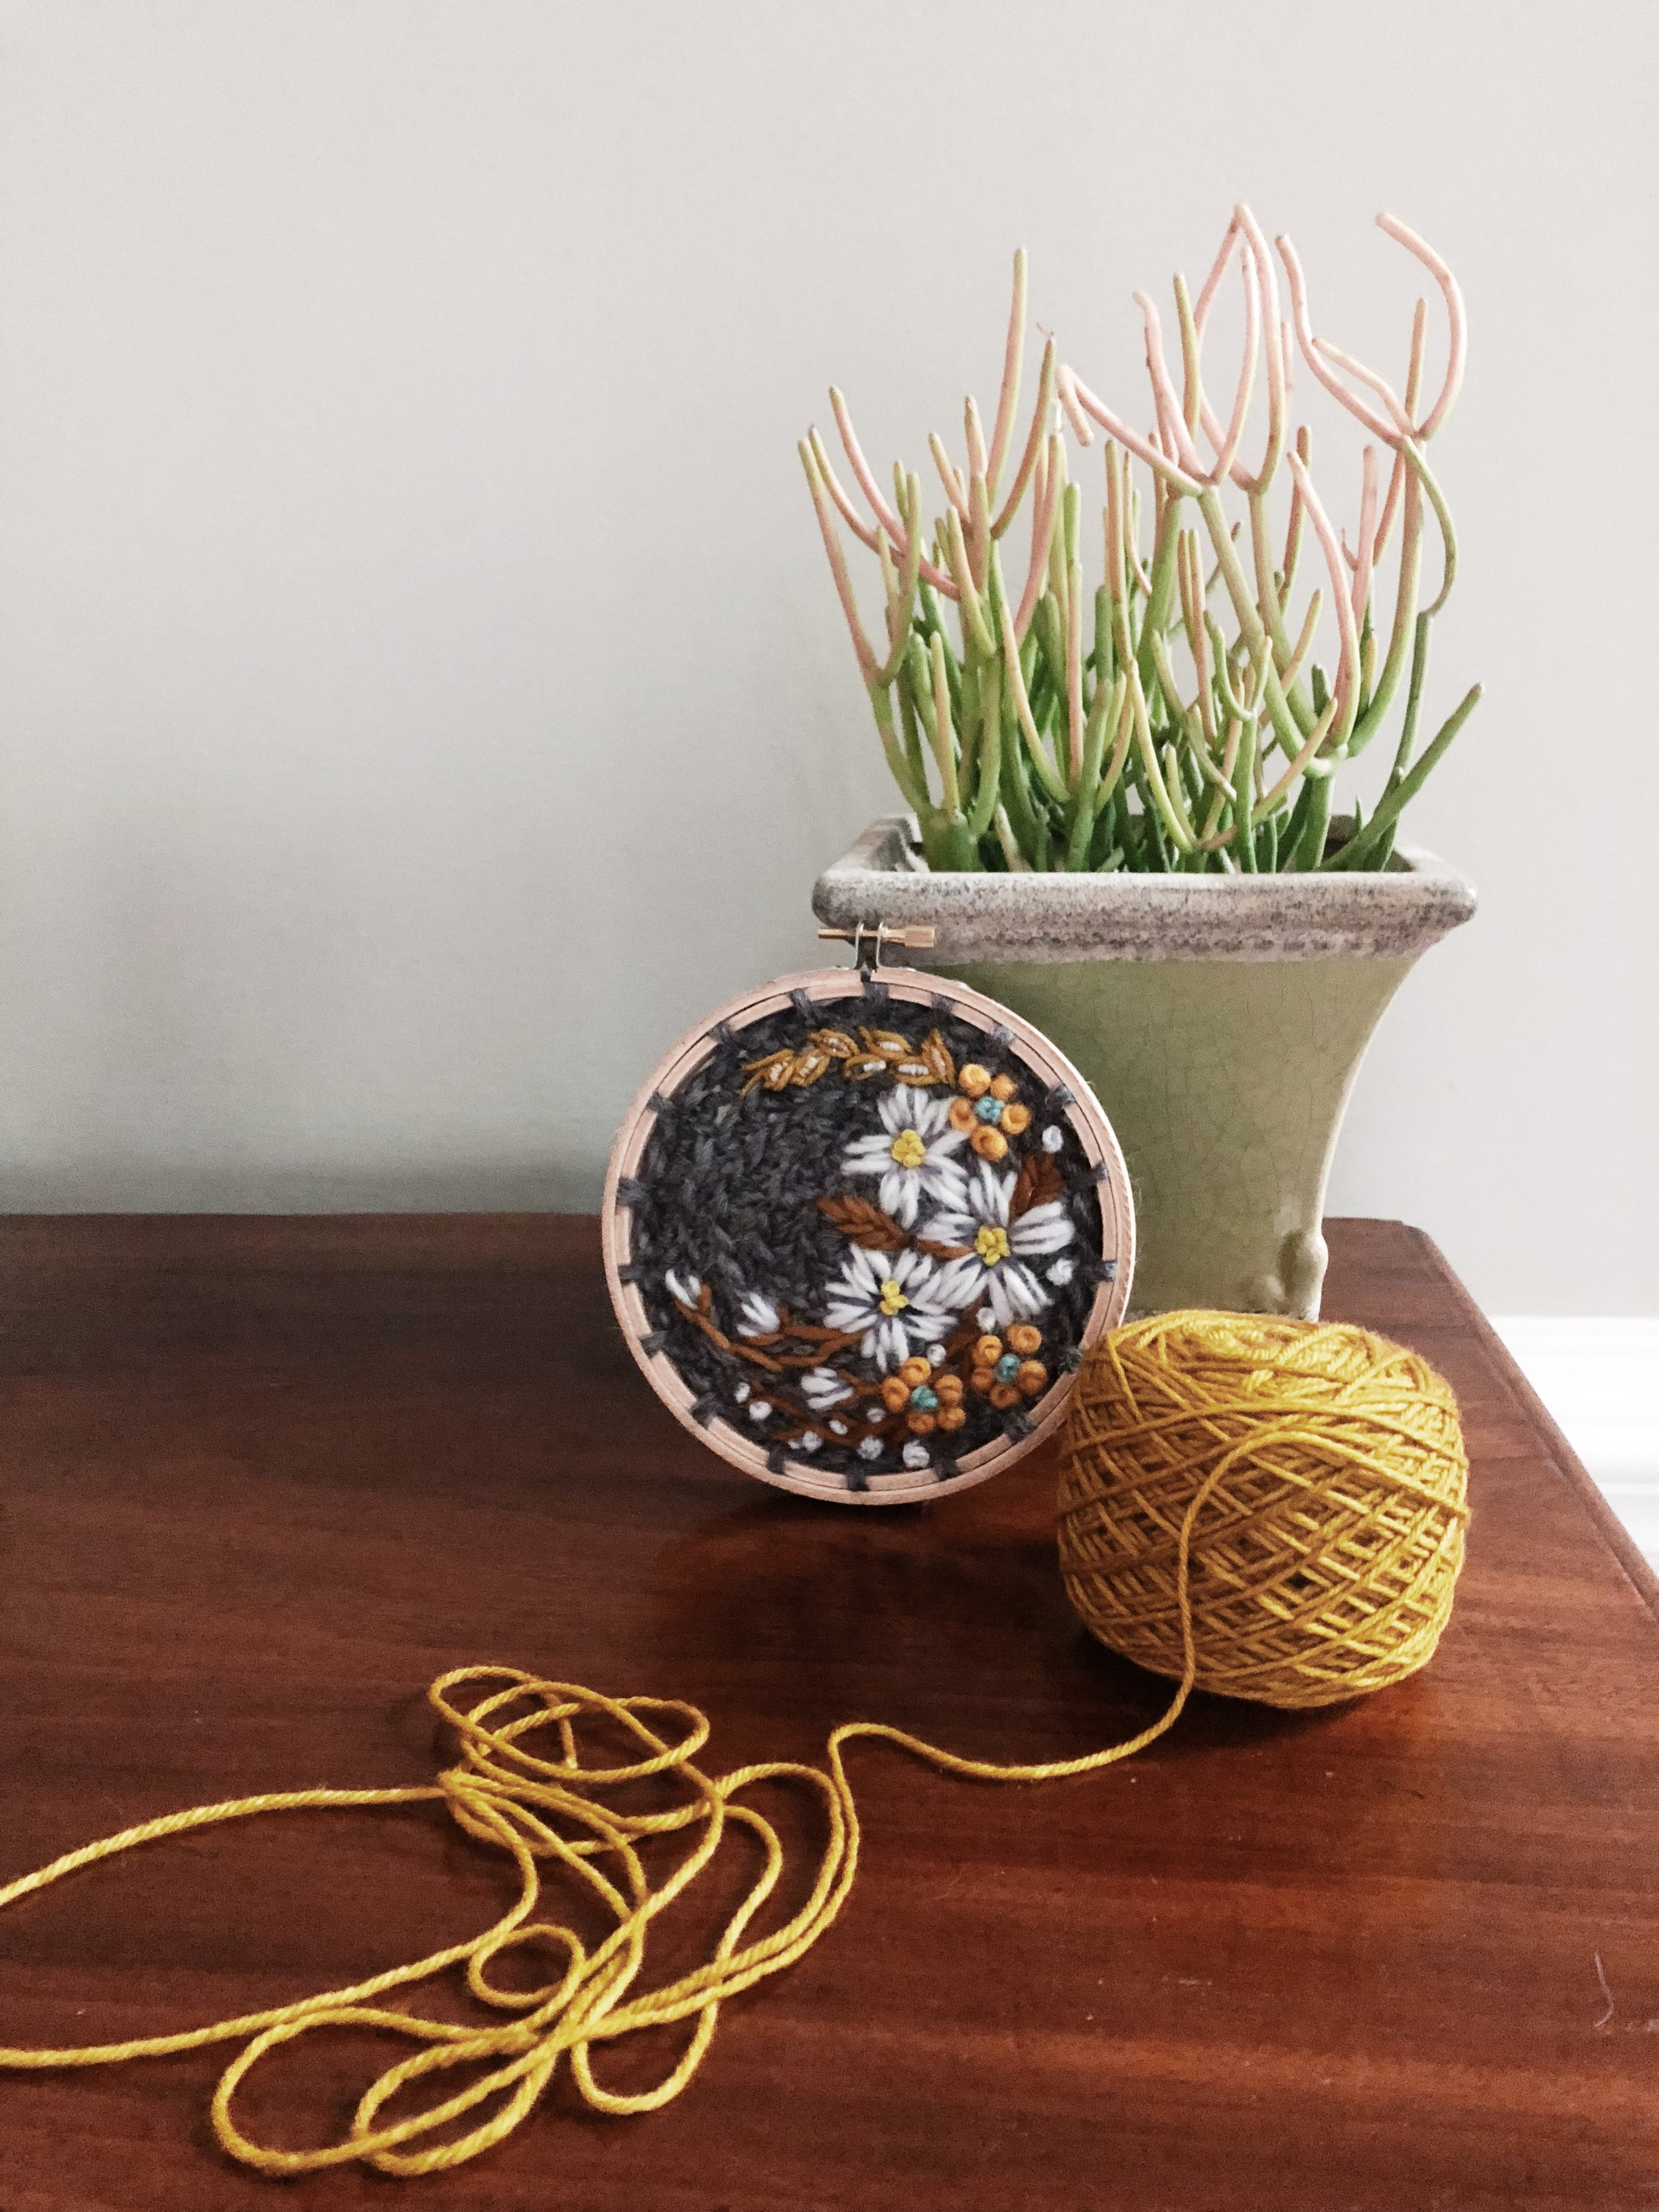 oandystudio.gold.grey.yellow.wool.embroidery.hoop.crewel.tapestry.crochet.pattern.flower.euphorbia.wall